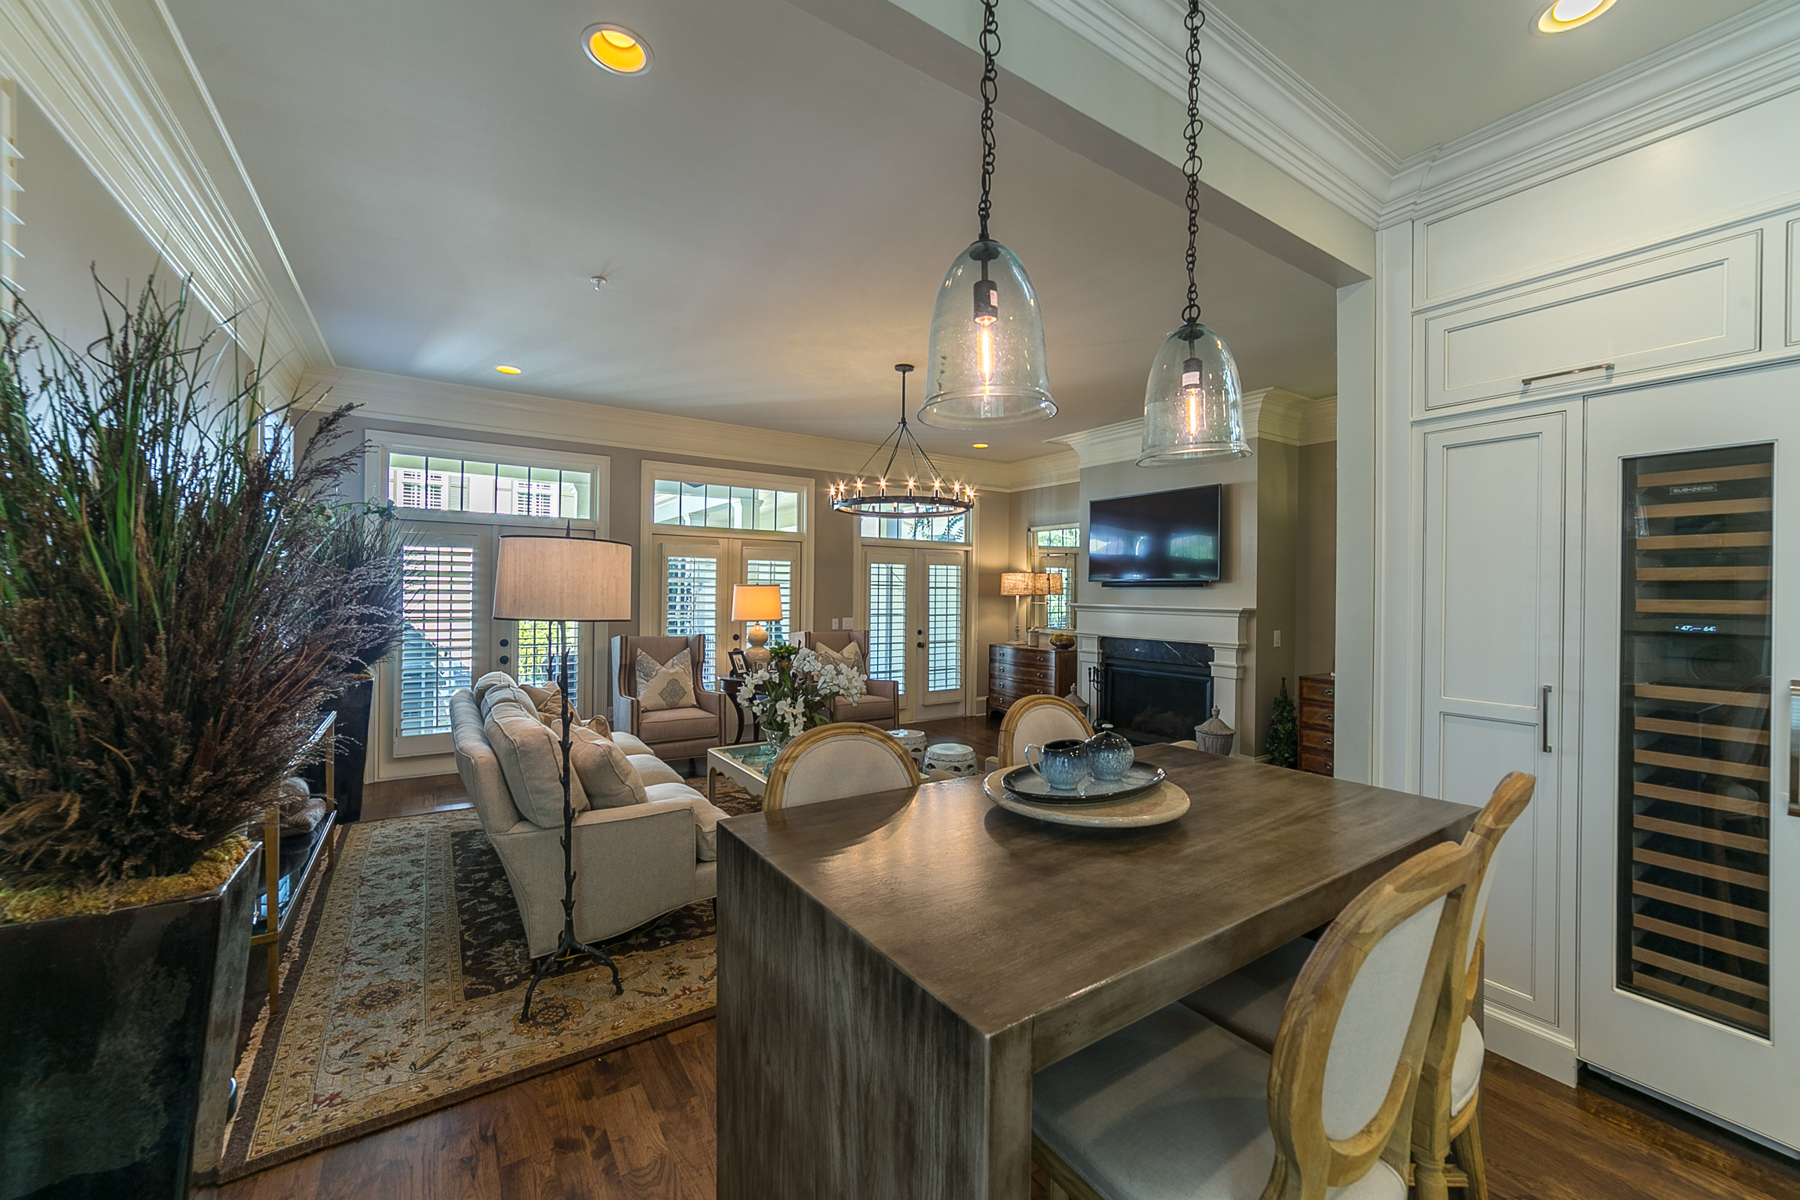 Additional photo for property listing at Coveted North Cove Masterpiece 304 Abercorn Square Peachtree City, Georgia 30269 Estados Unidos